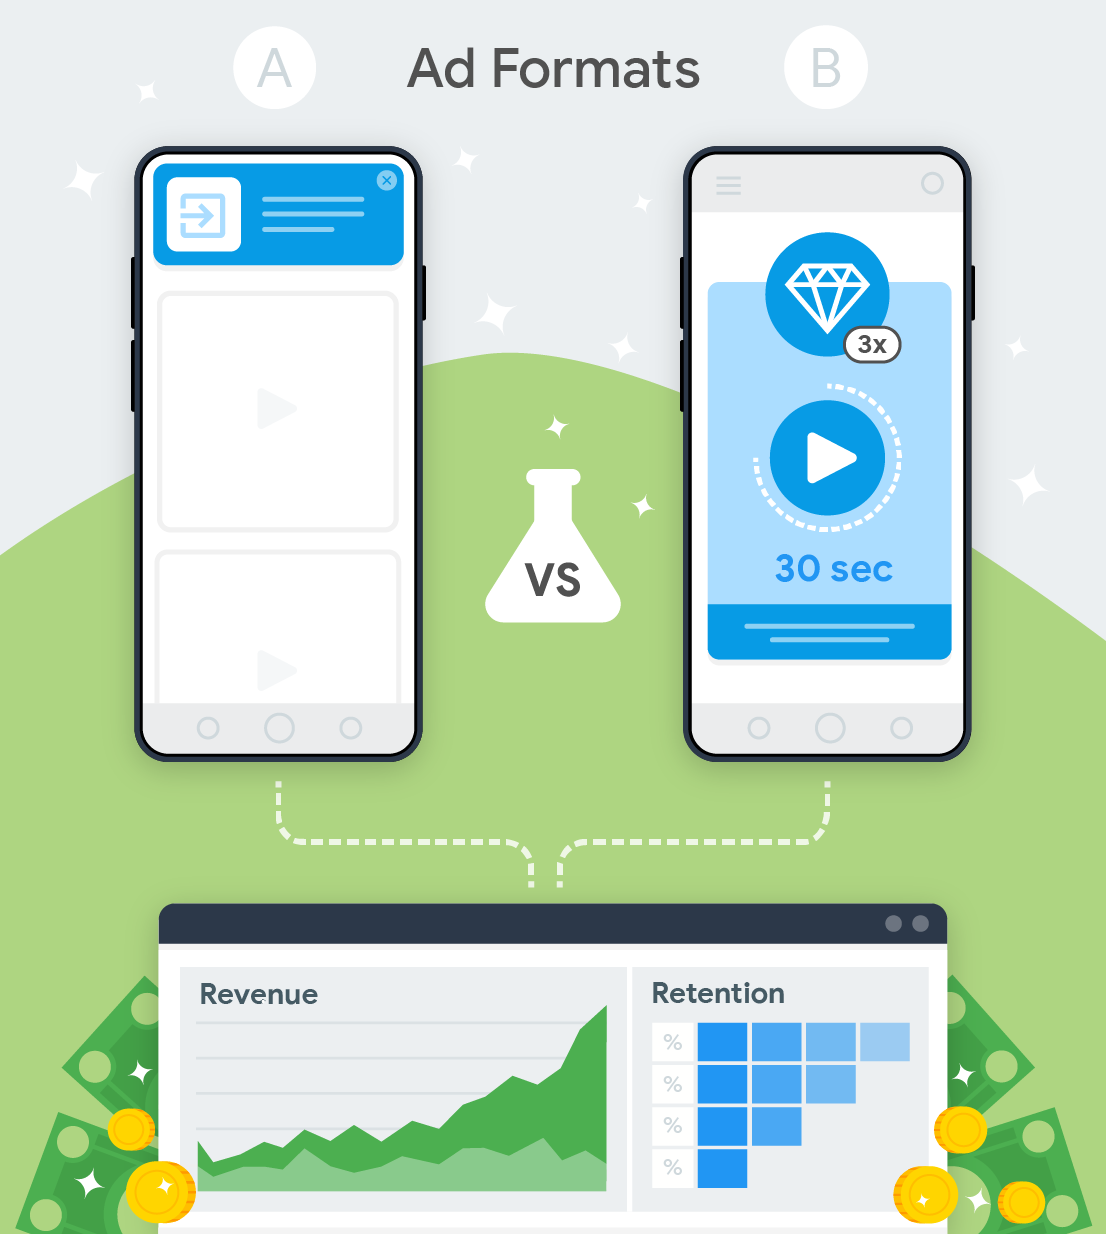 testing two ad formats and their impact on revenue and retention